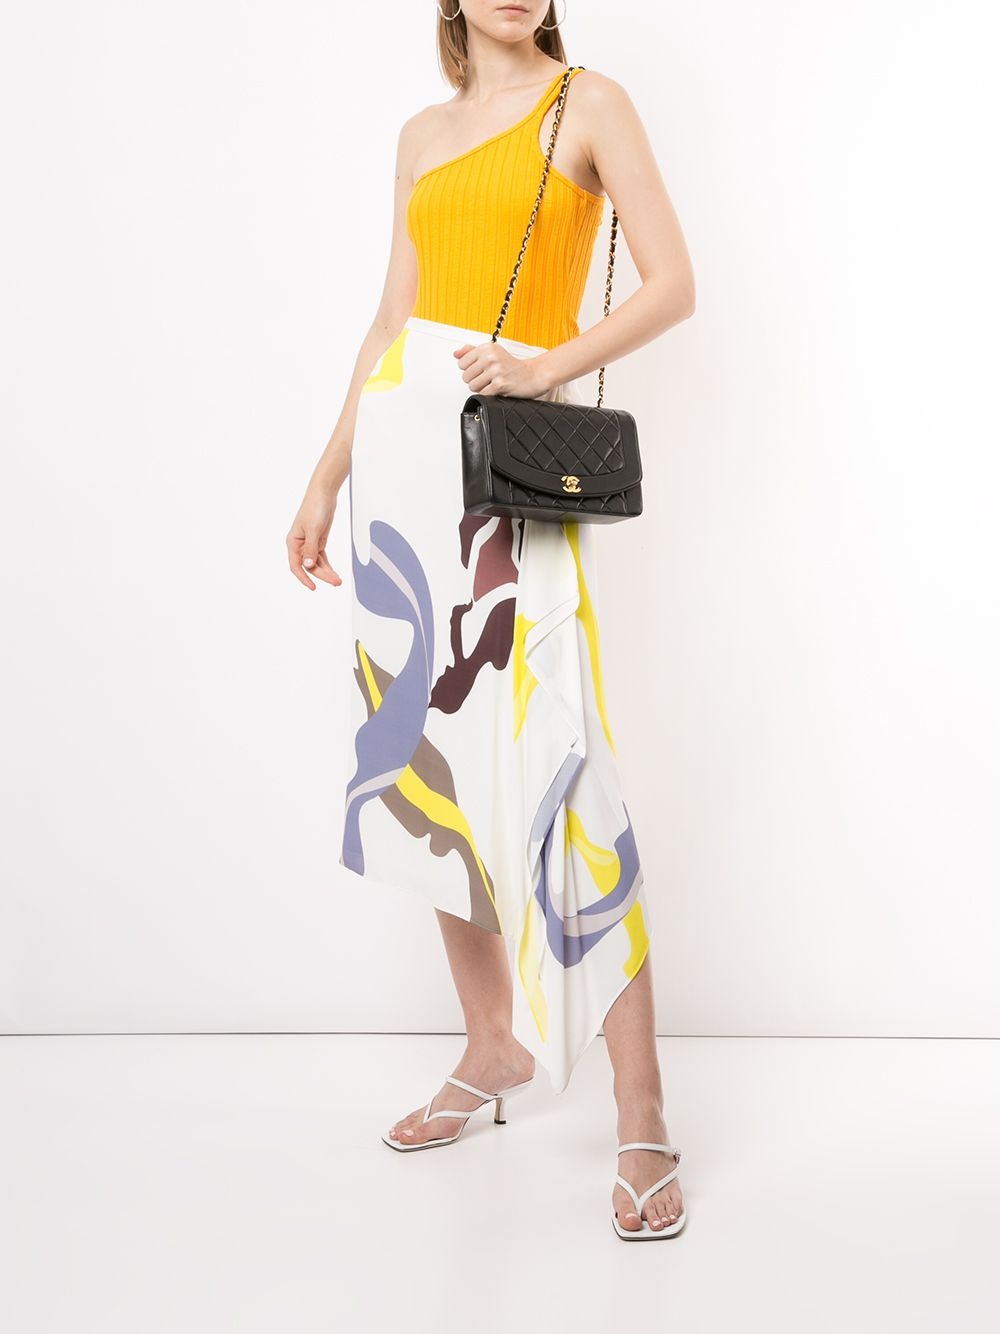 The Diana is a structured shoulder bag named after the former Princess of Wales